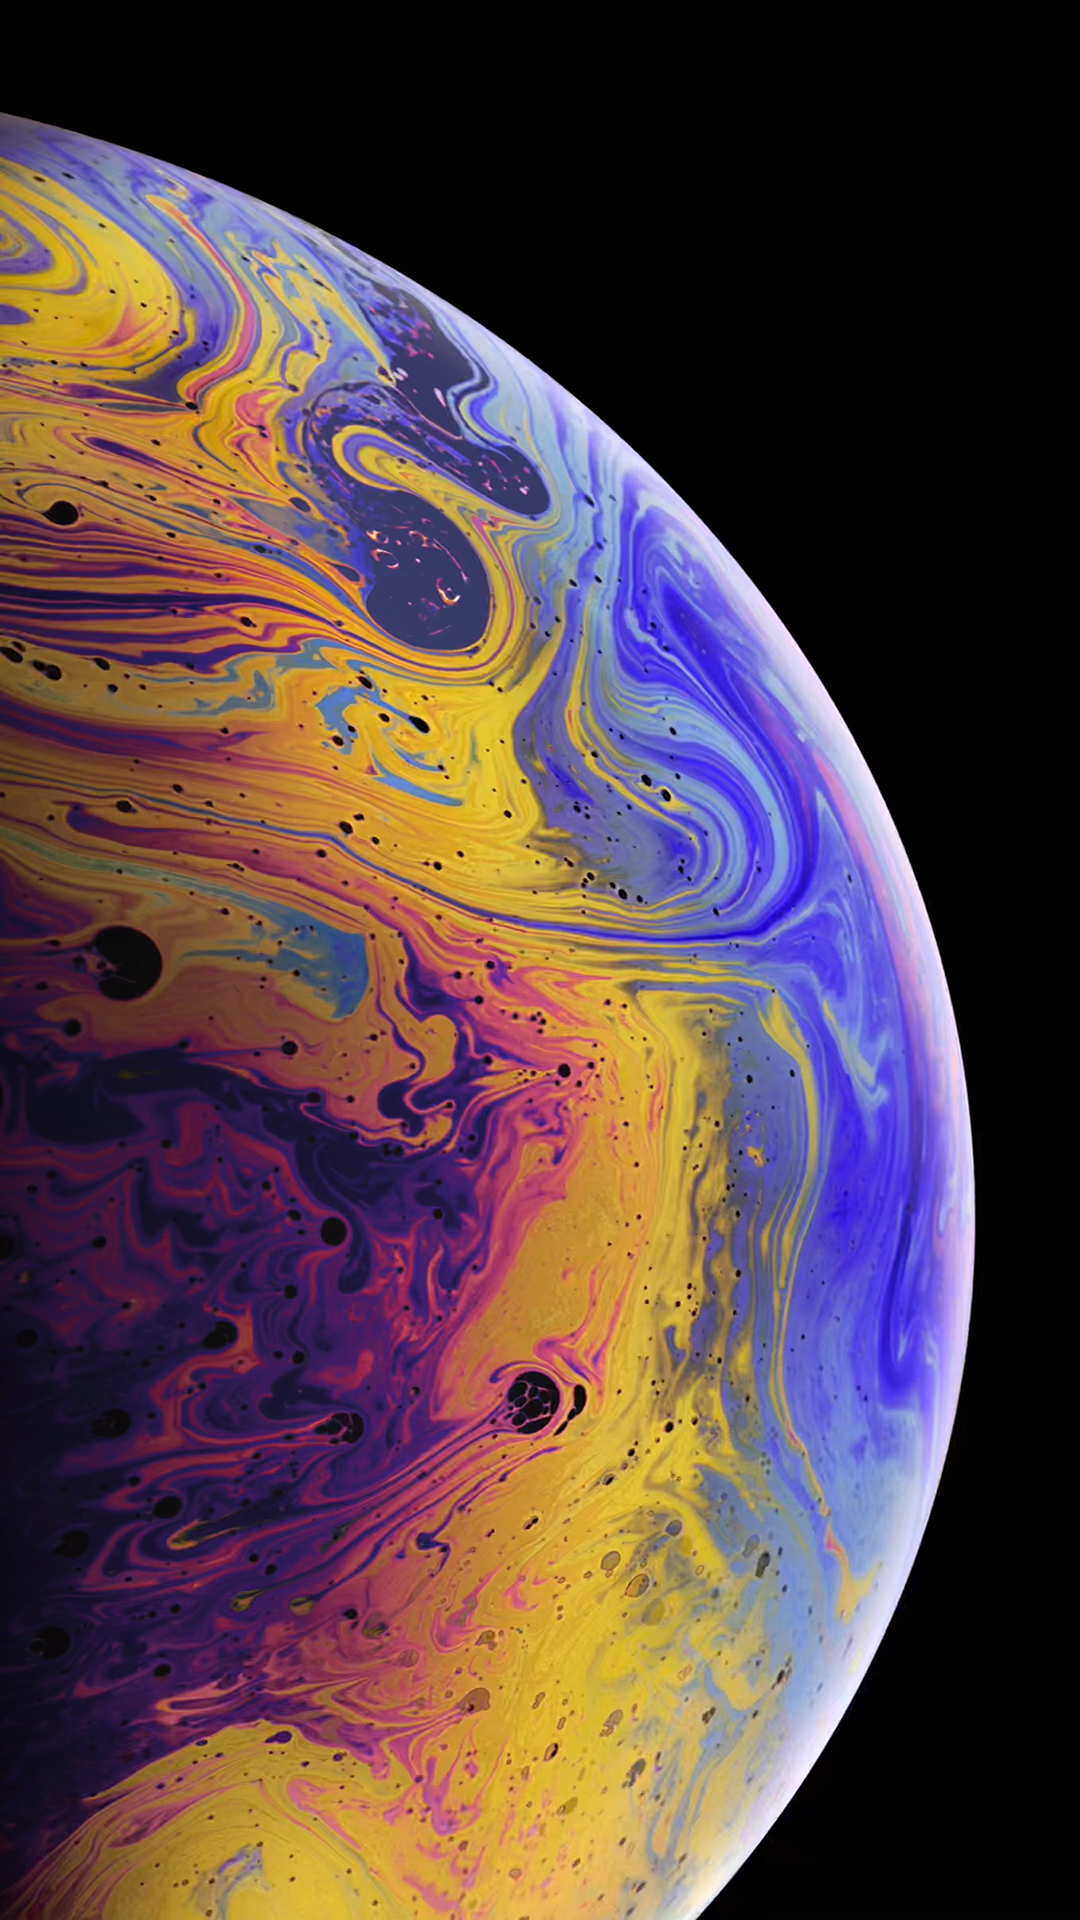 Wallpapers iPhone Xs iPhone Xs Max and iPhone Xr 1080x1920